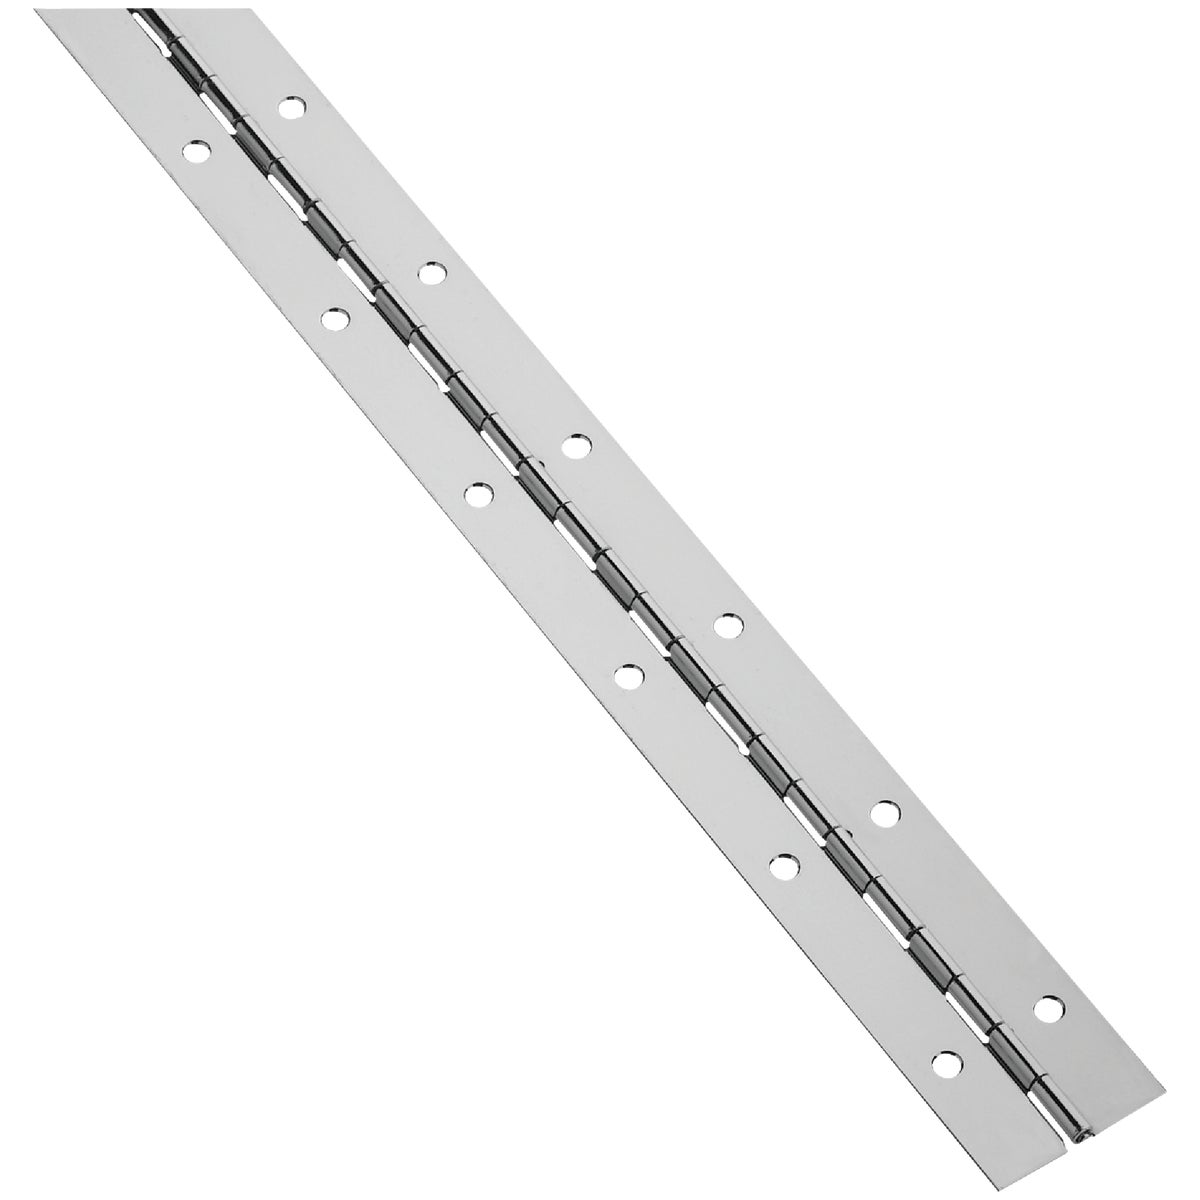 1-1/2X72 NP HINGE - N148486 by National Mfg Co